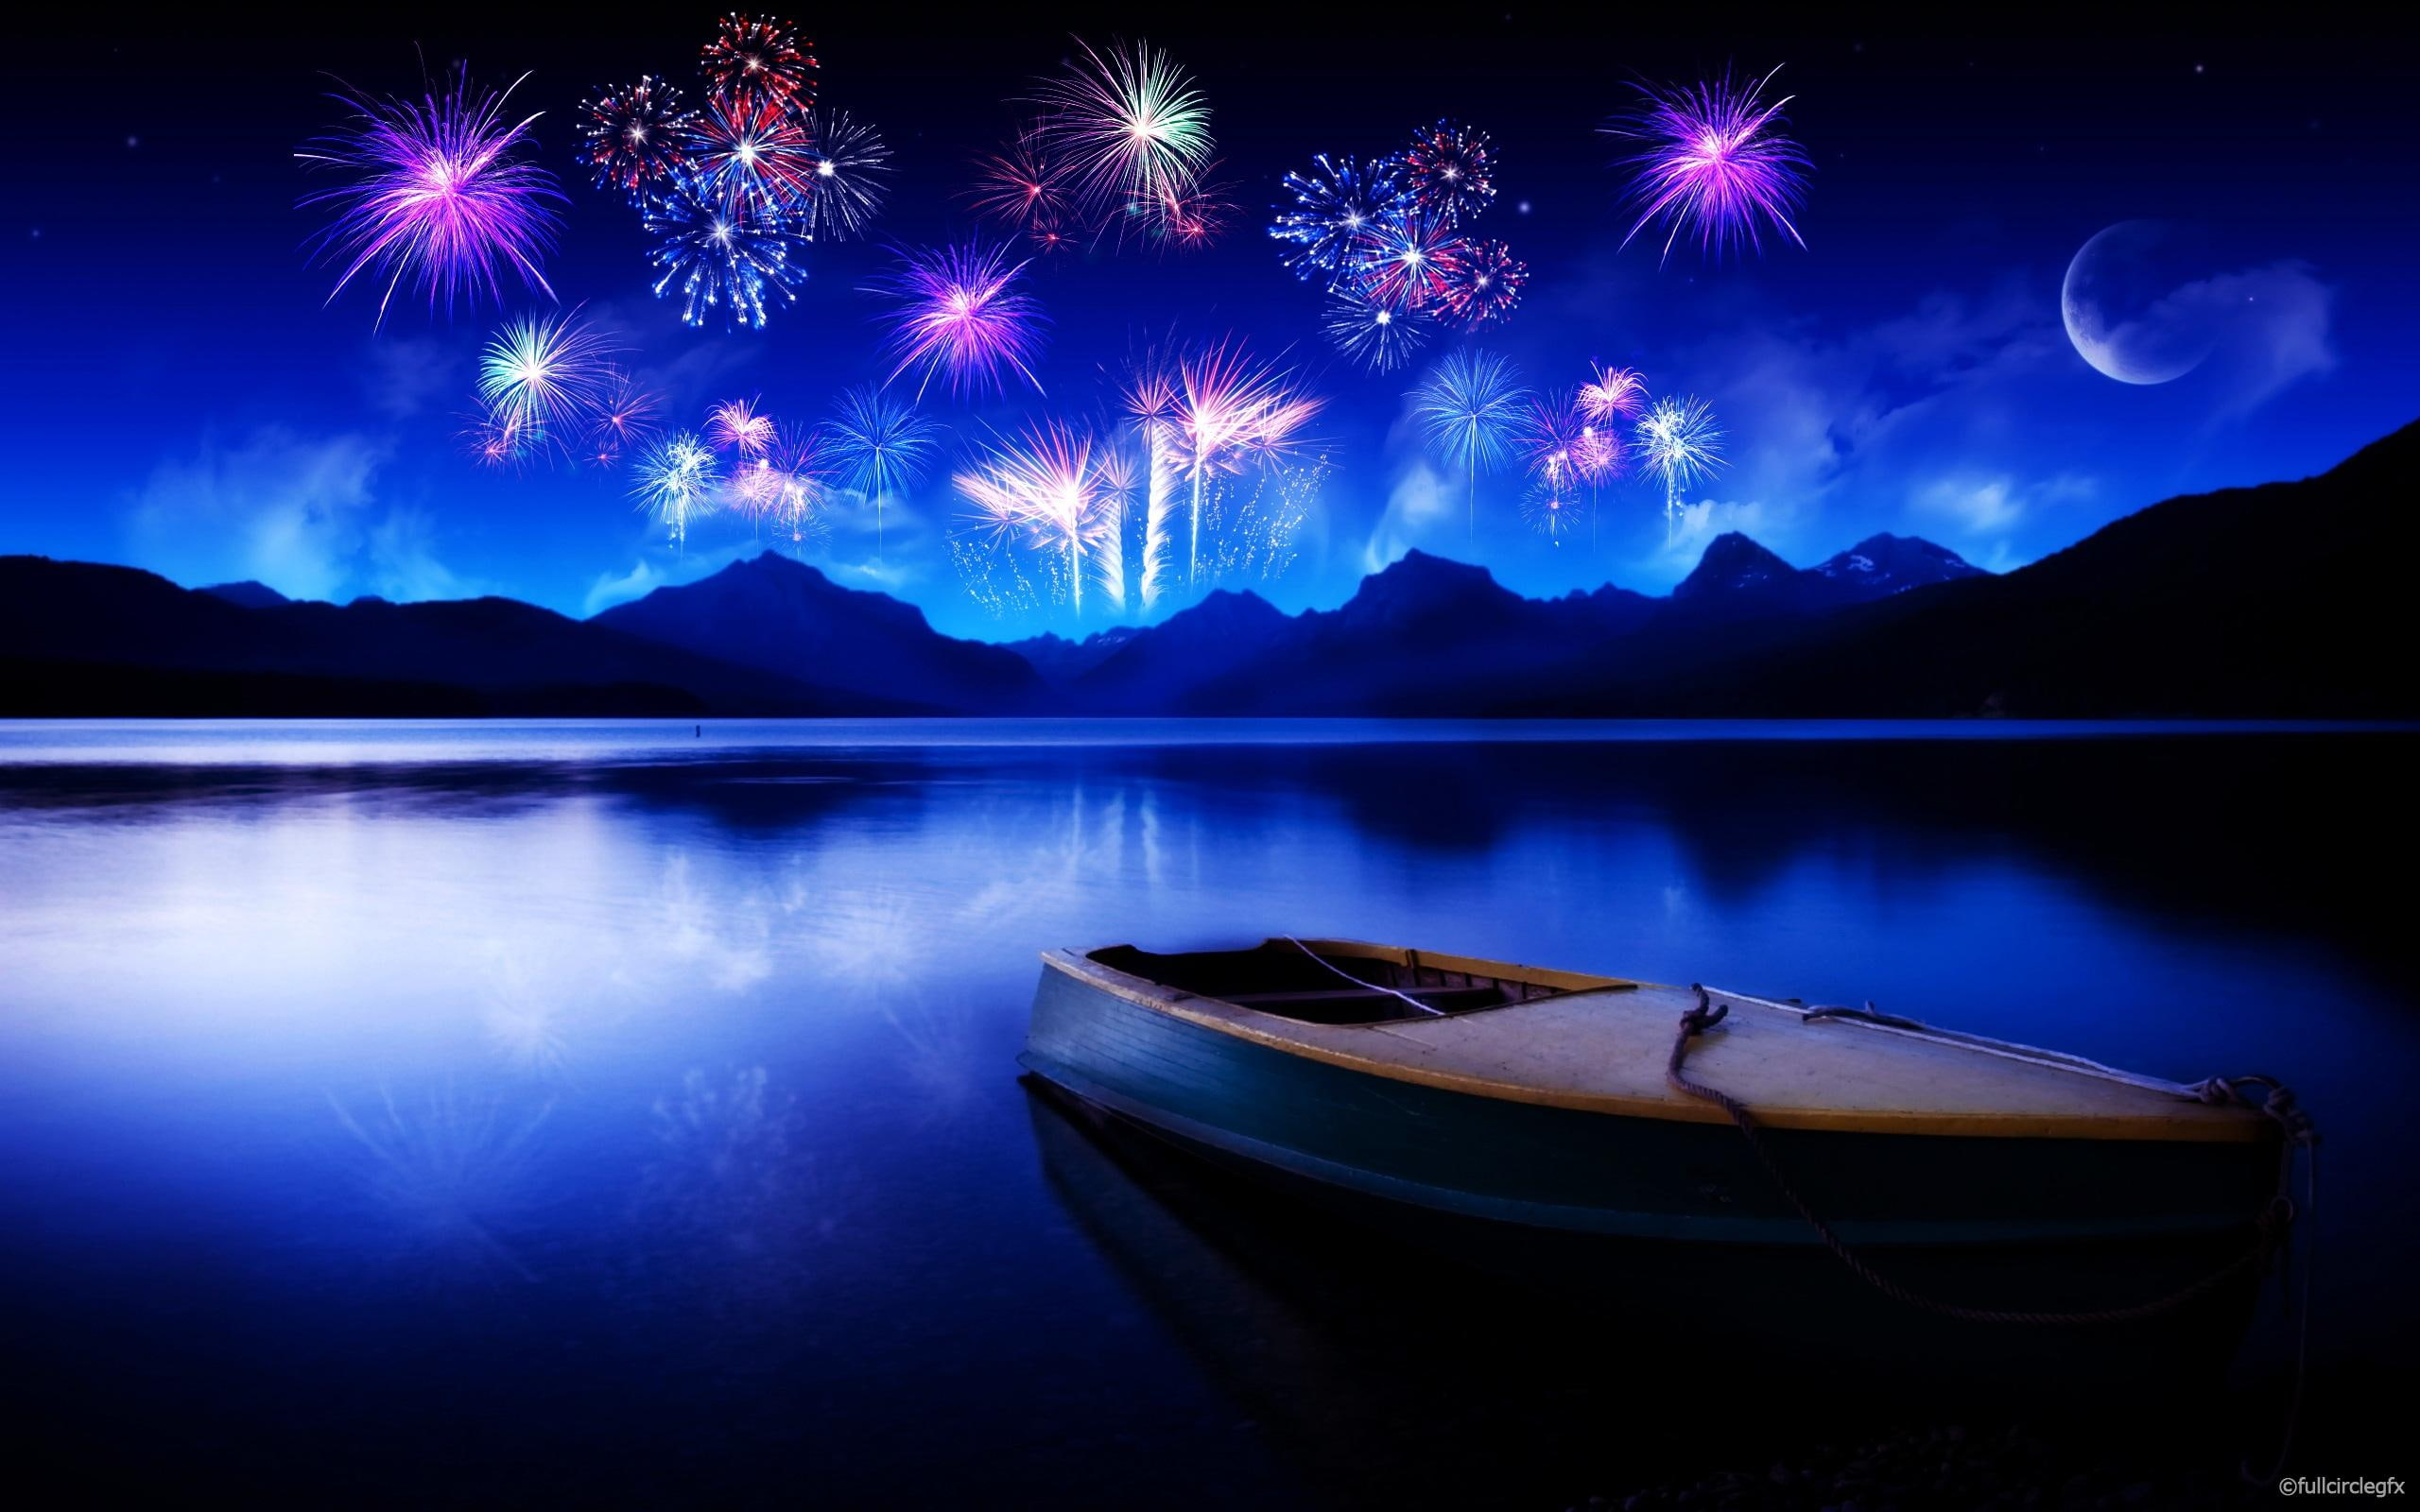 HD wallpaper Celebrating New Year HD creative and graphics 2560x1600